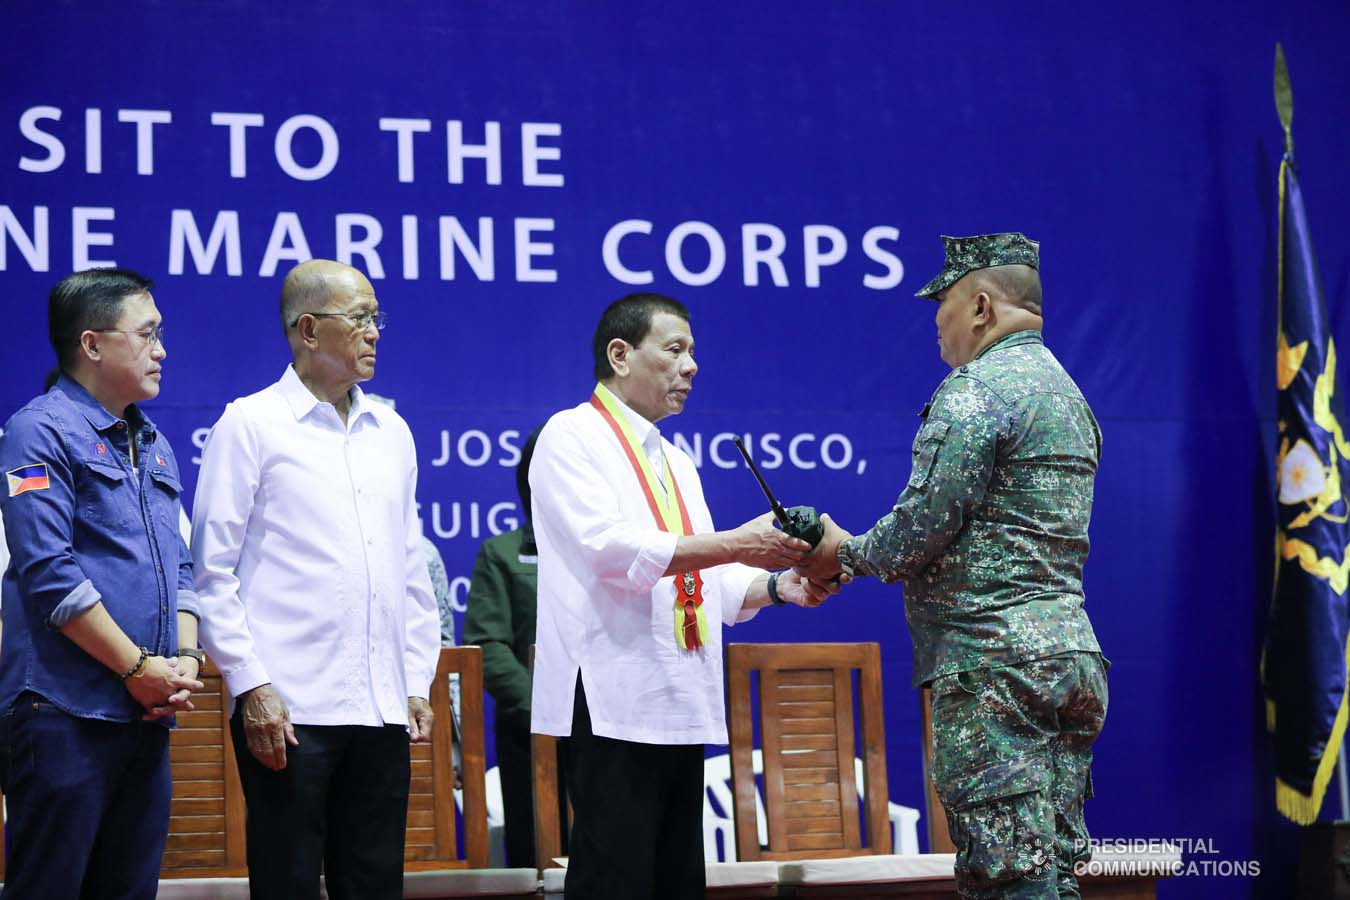 President Rodrigo Roa Duterte leads the ceremonial turnover of radio equipment to the personnel of the Philippine Marine Corps at Fort Bonifacio in Taguig City on January 13, 2020. ALFRED FRIAS/PRESIDENTIAL PHOTO